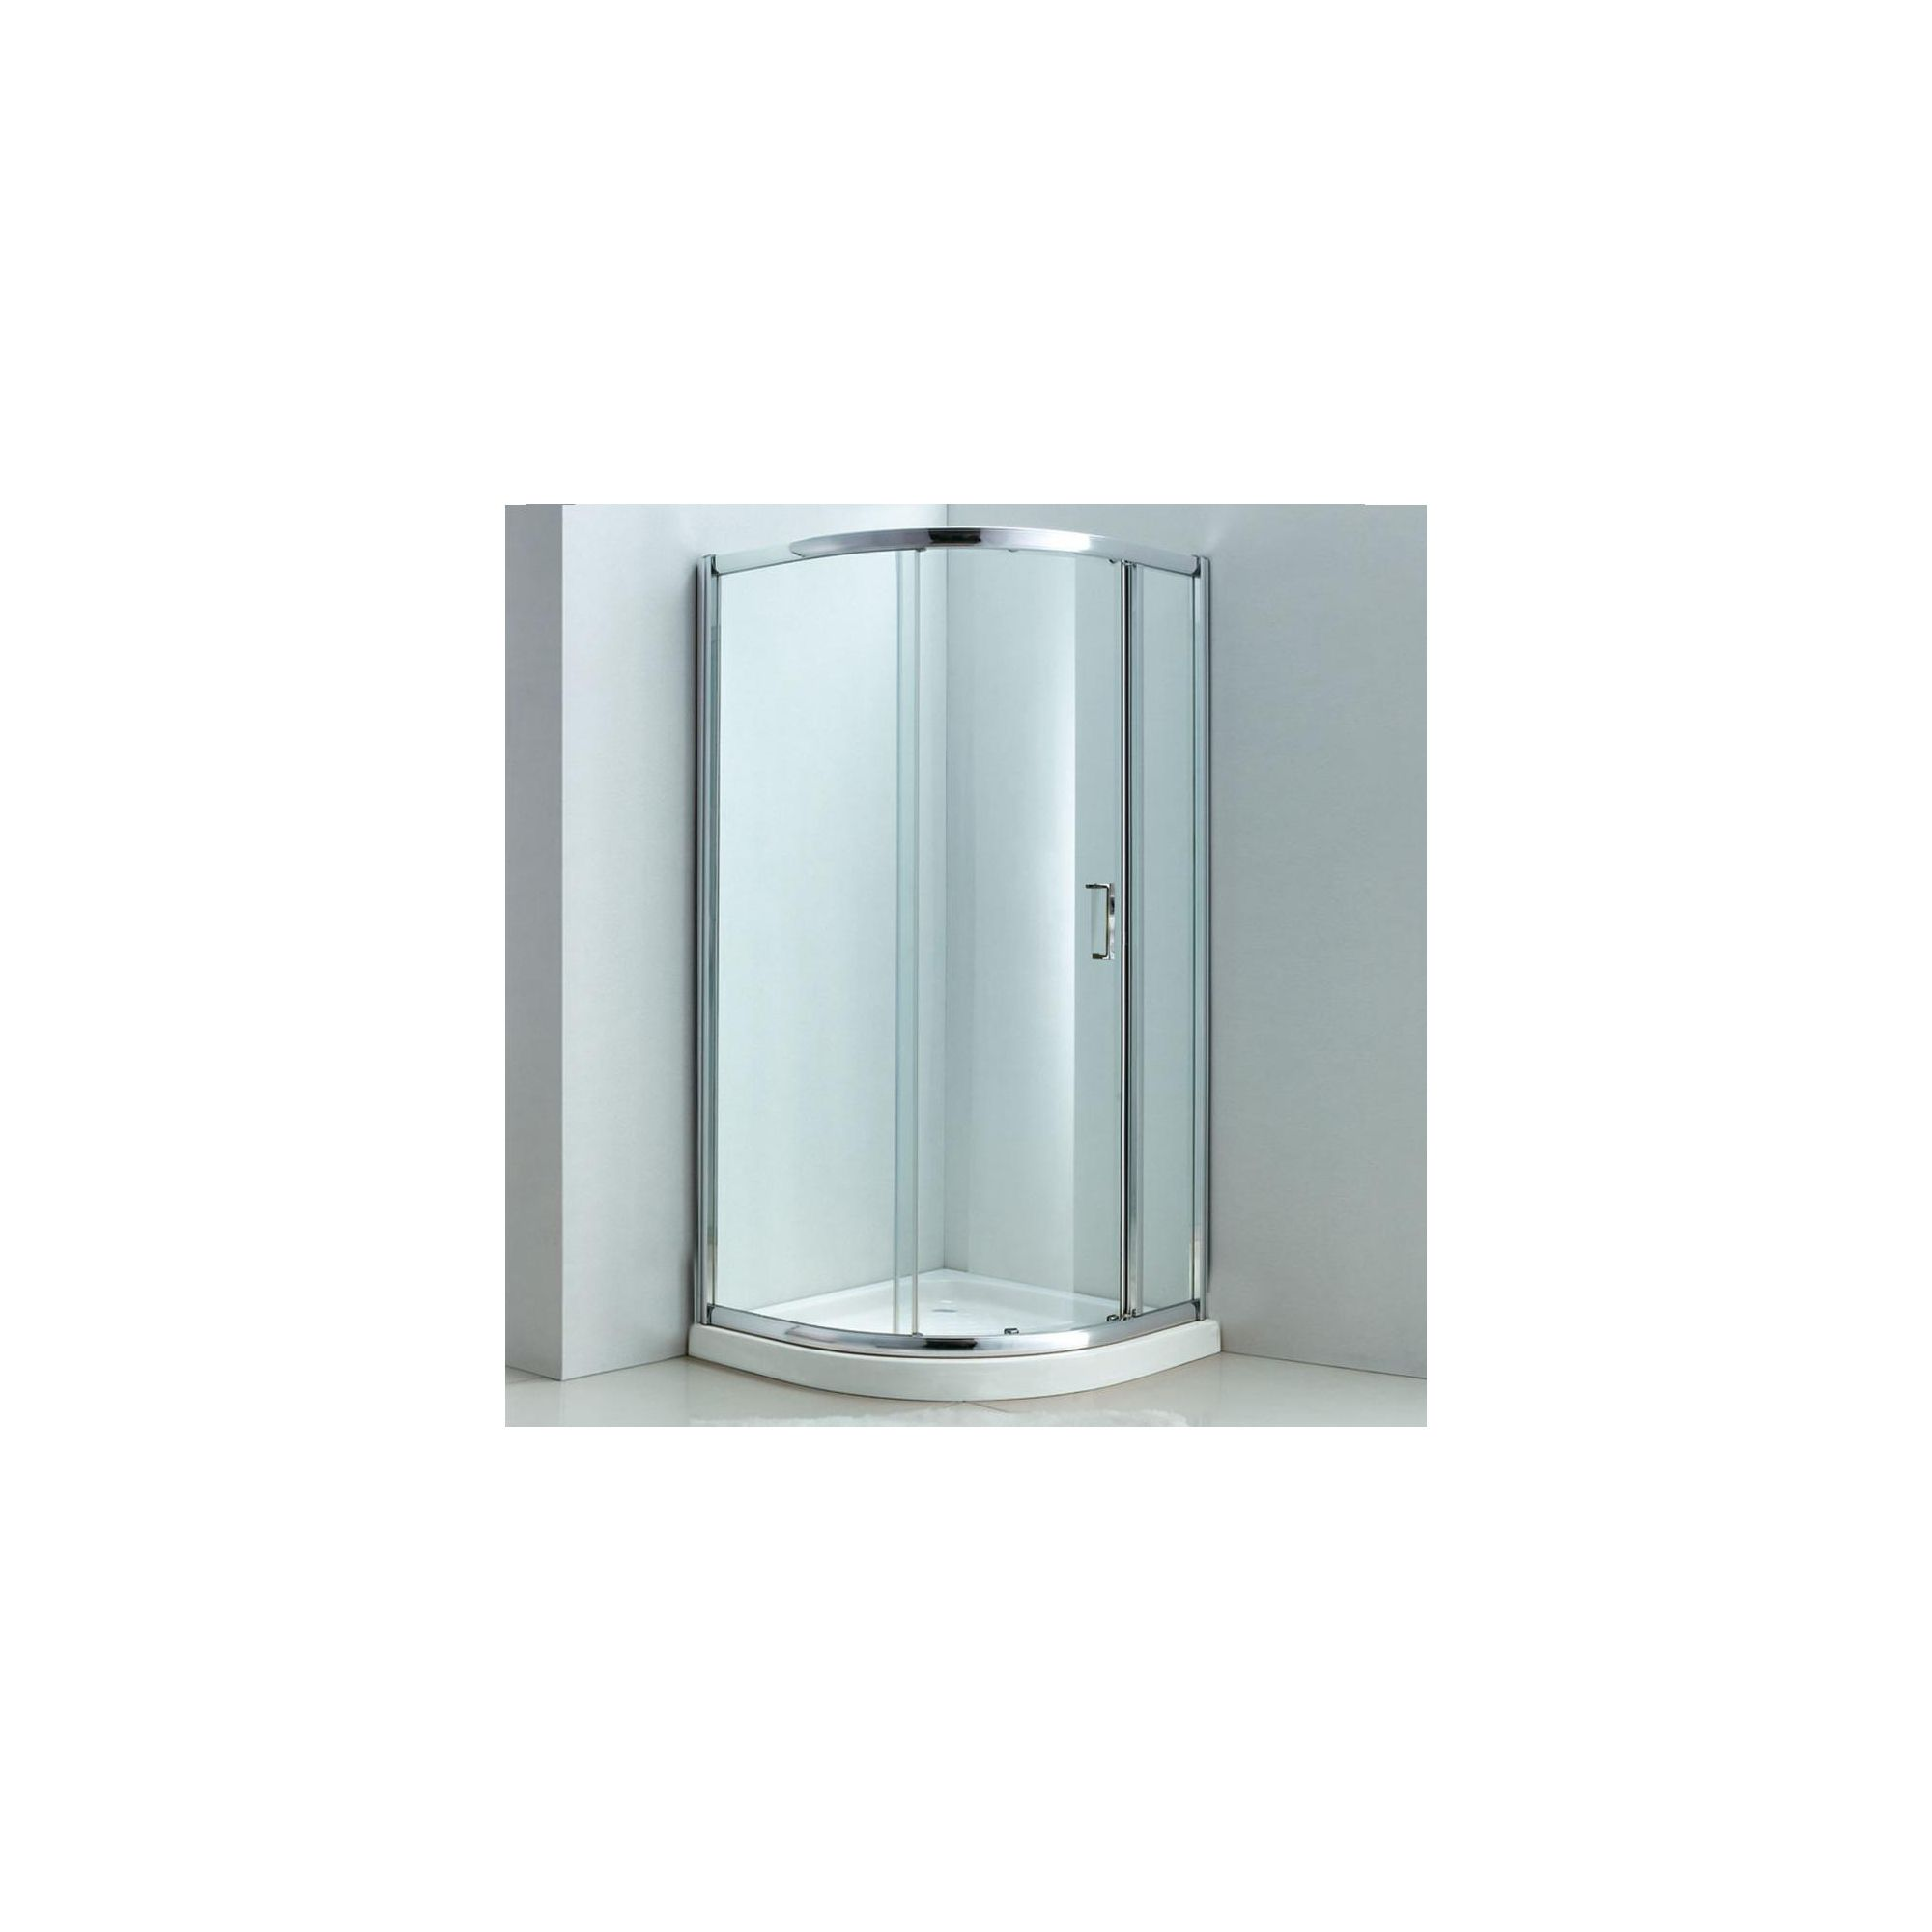 Duchy Style Single Offset Quadrant Door Shower Enclosure, 1200mm x 900mm, 6mm Glass, Low Profile Tray, Right Handed at Tesco Direct